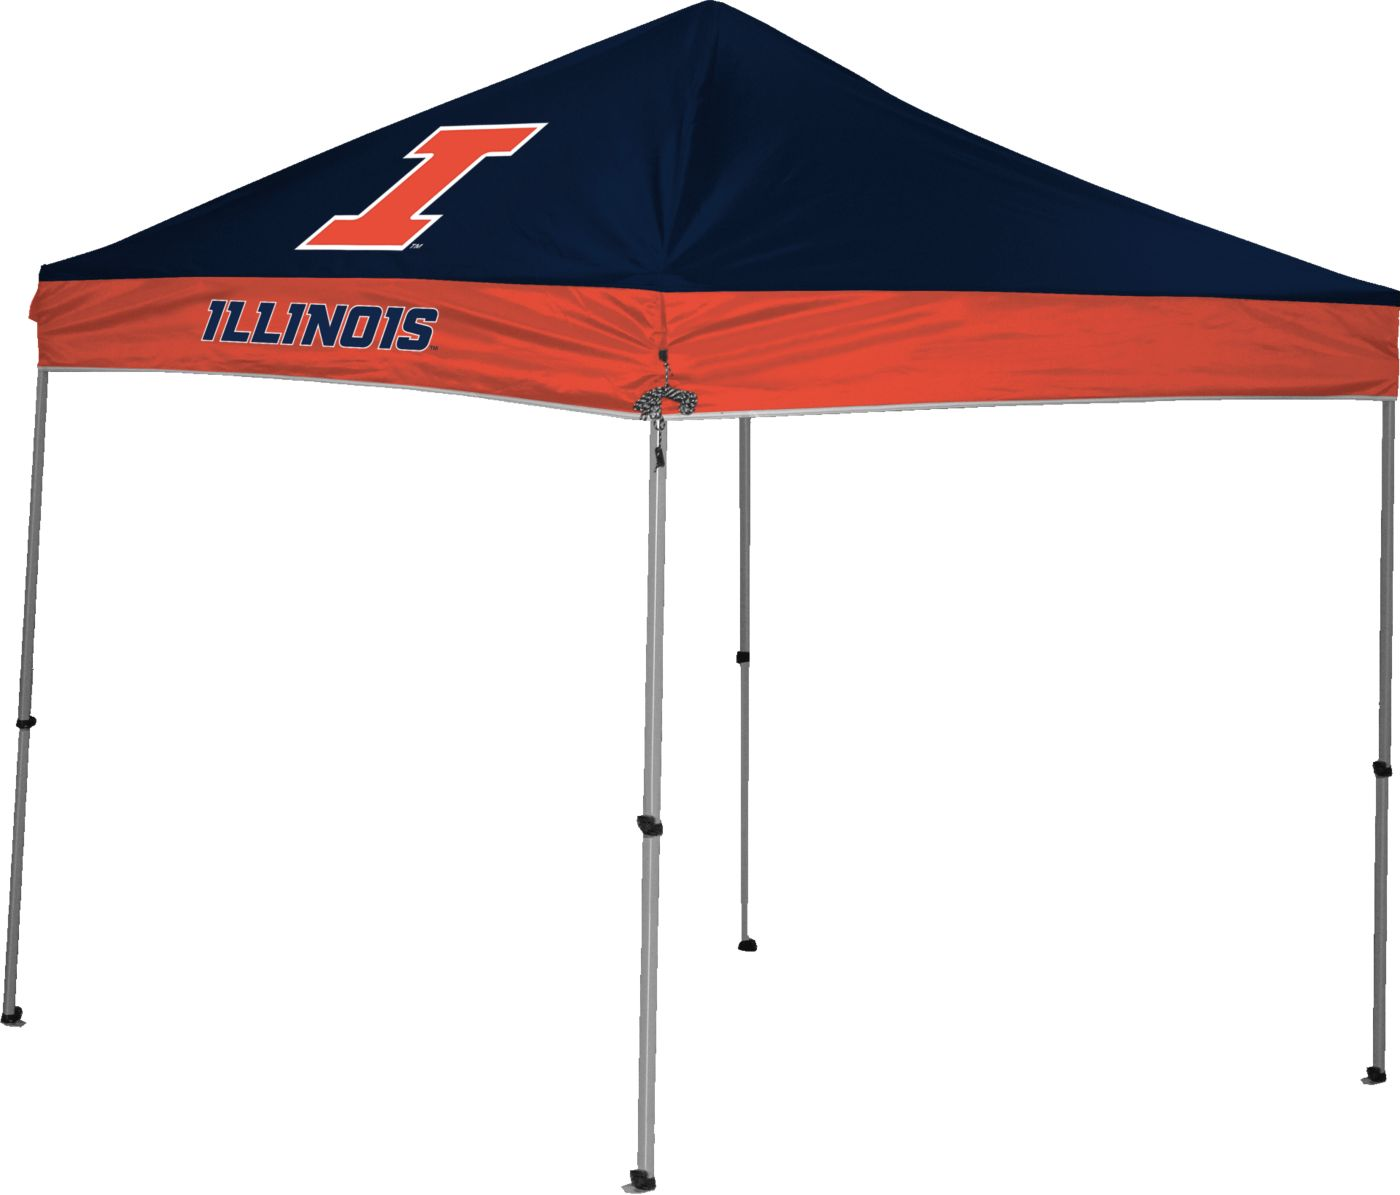 Rawlings Illinois Fighting Illini 9' x 9' Sideline Canopy Tent